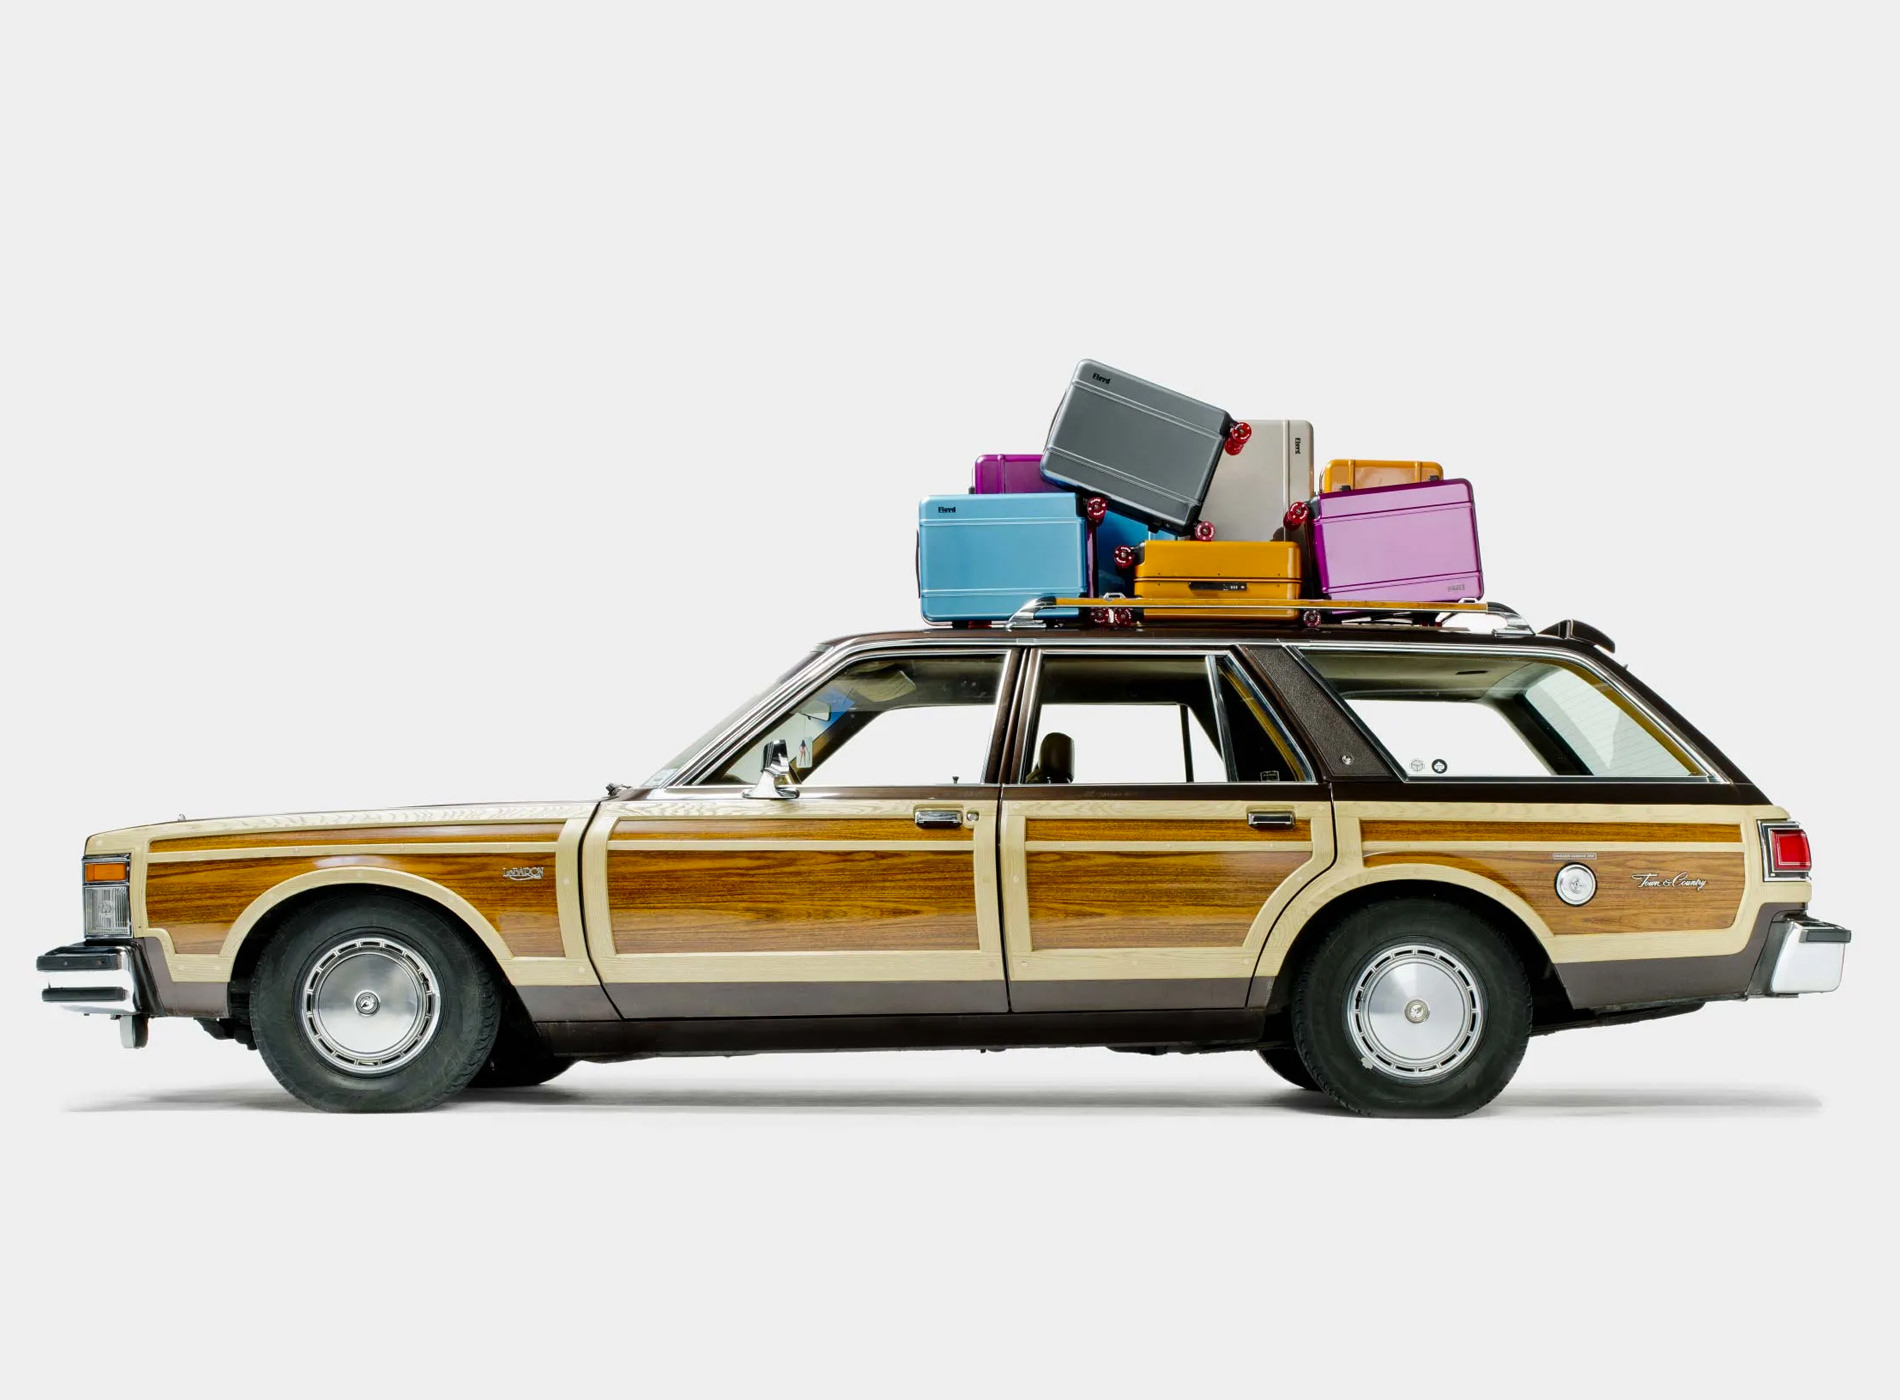 Floyd Valises Travel Case Cabin Check-In Inspiration Californie Venice Beach Skate Culture